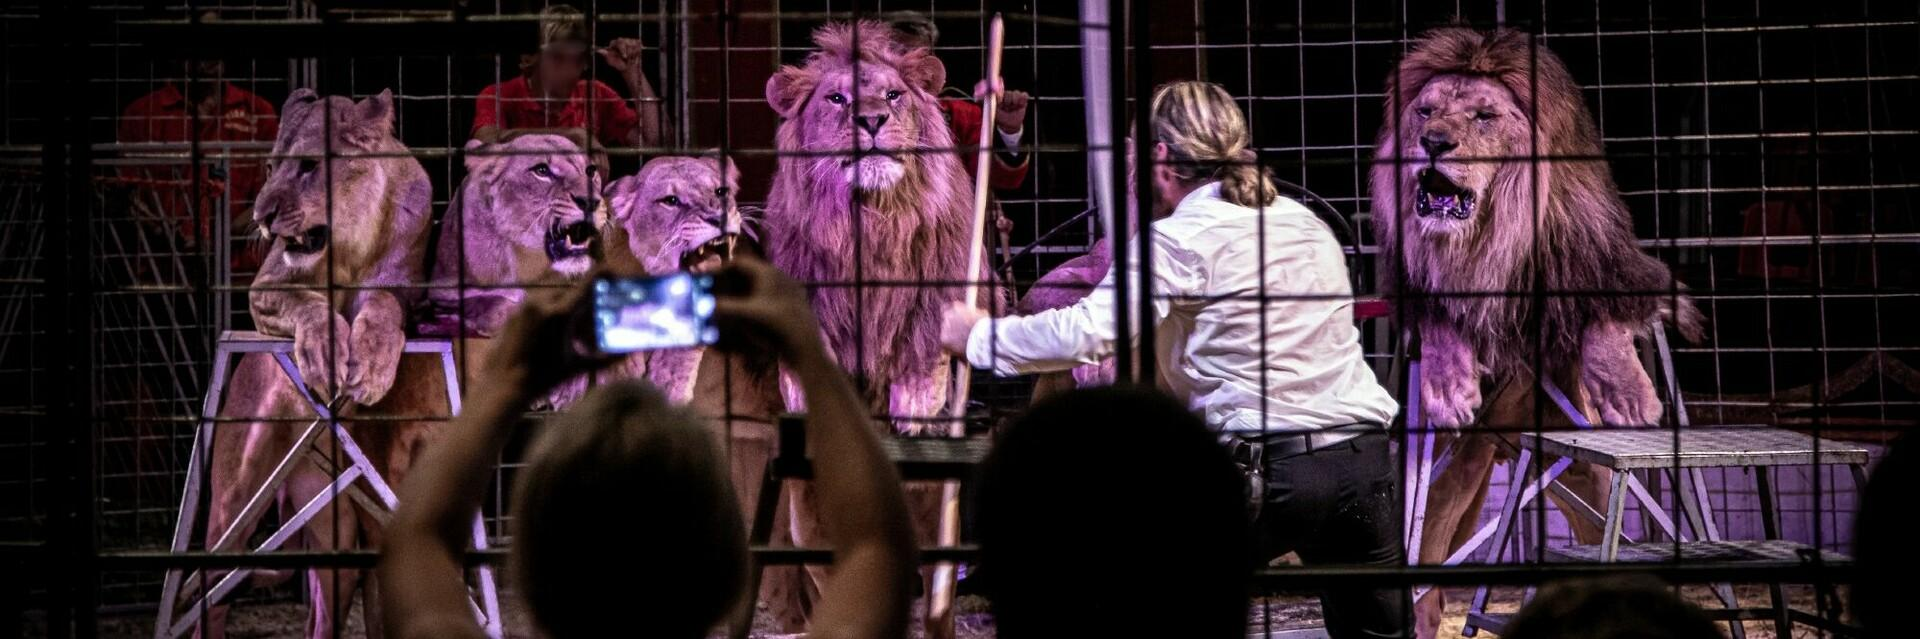 Big cats in a circus